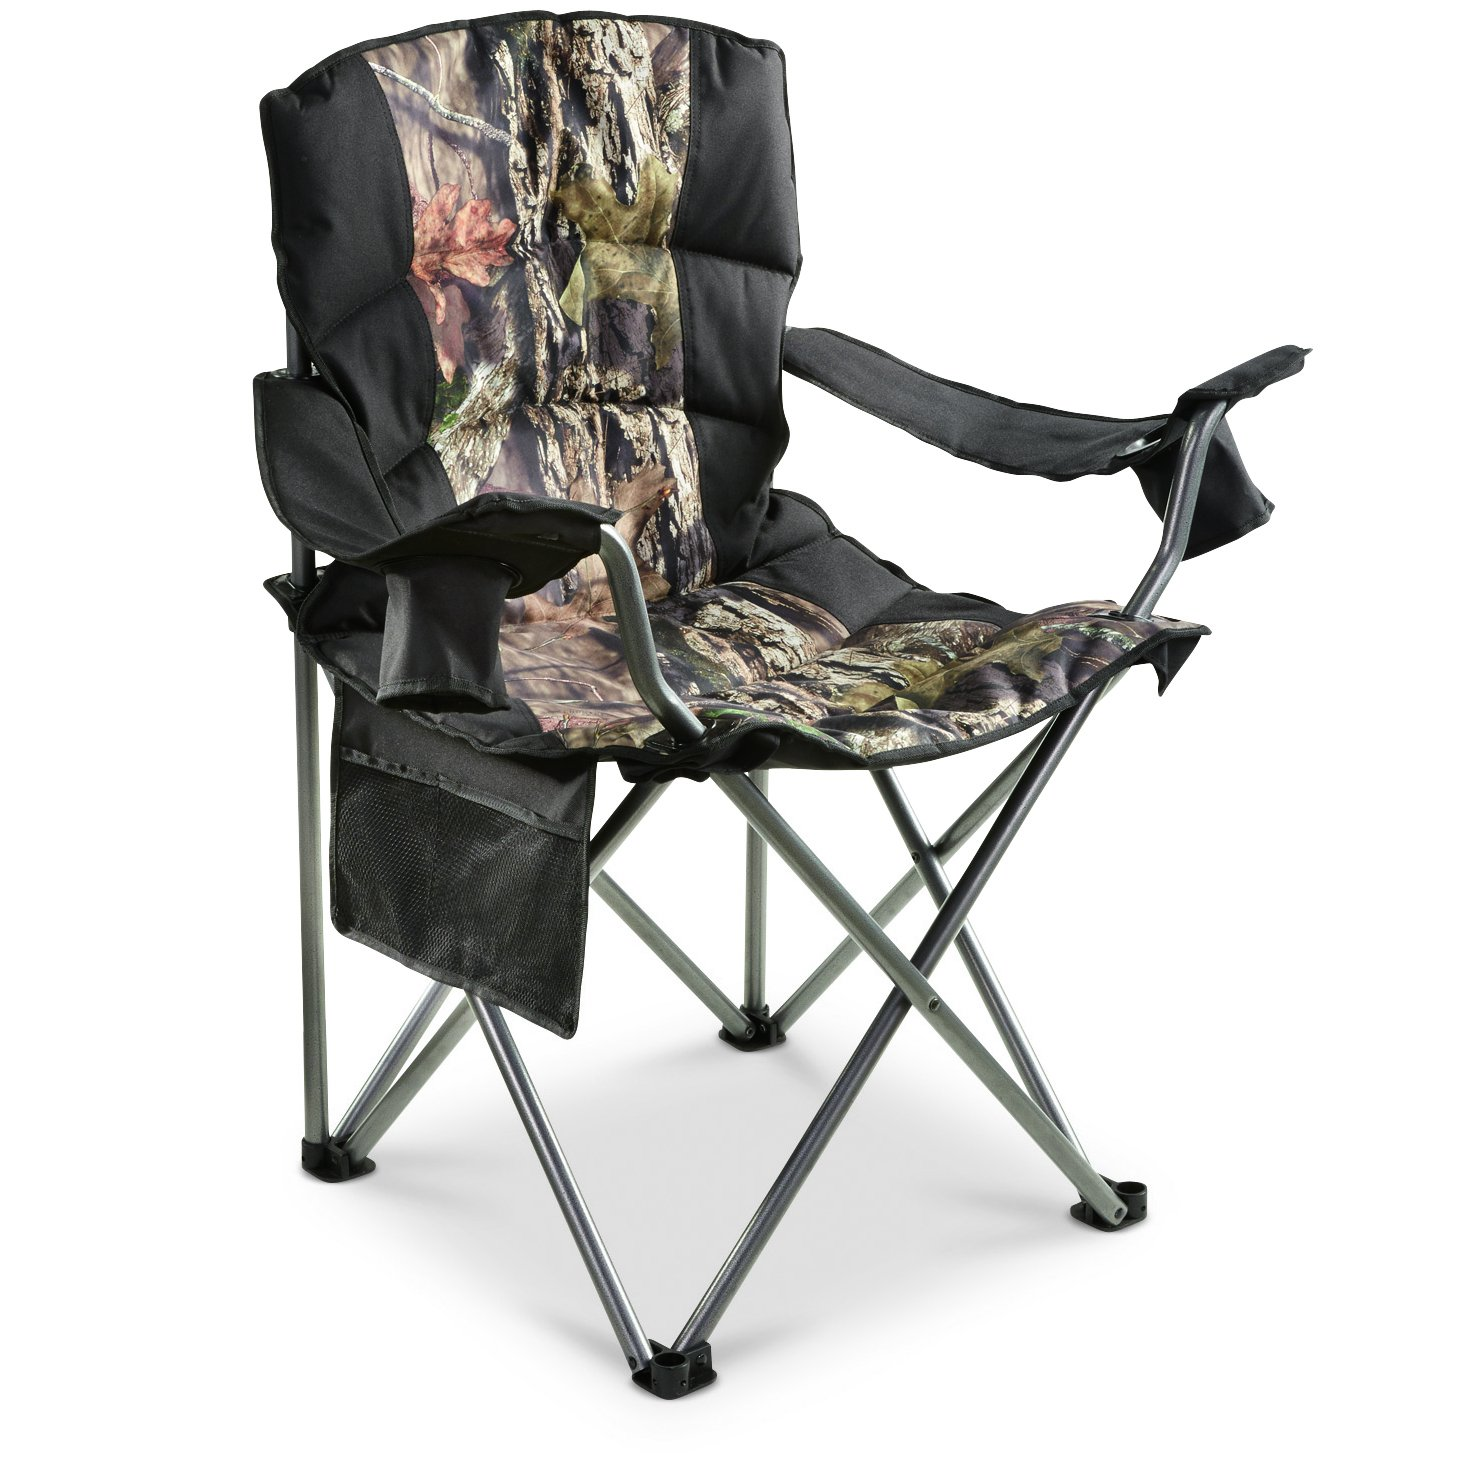 Camping Chairs For Heavy People Up To 1000Lbs US & UK